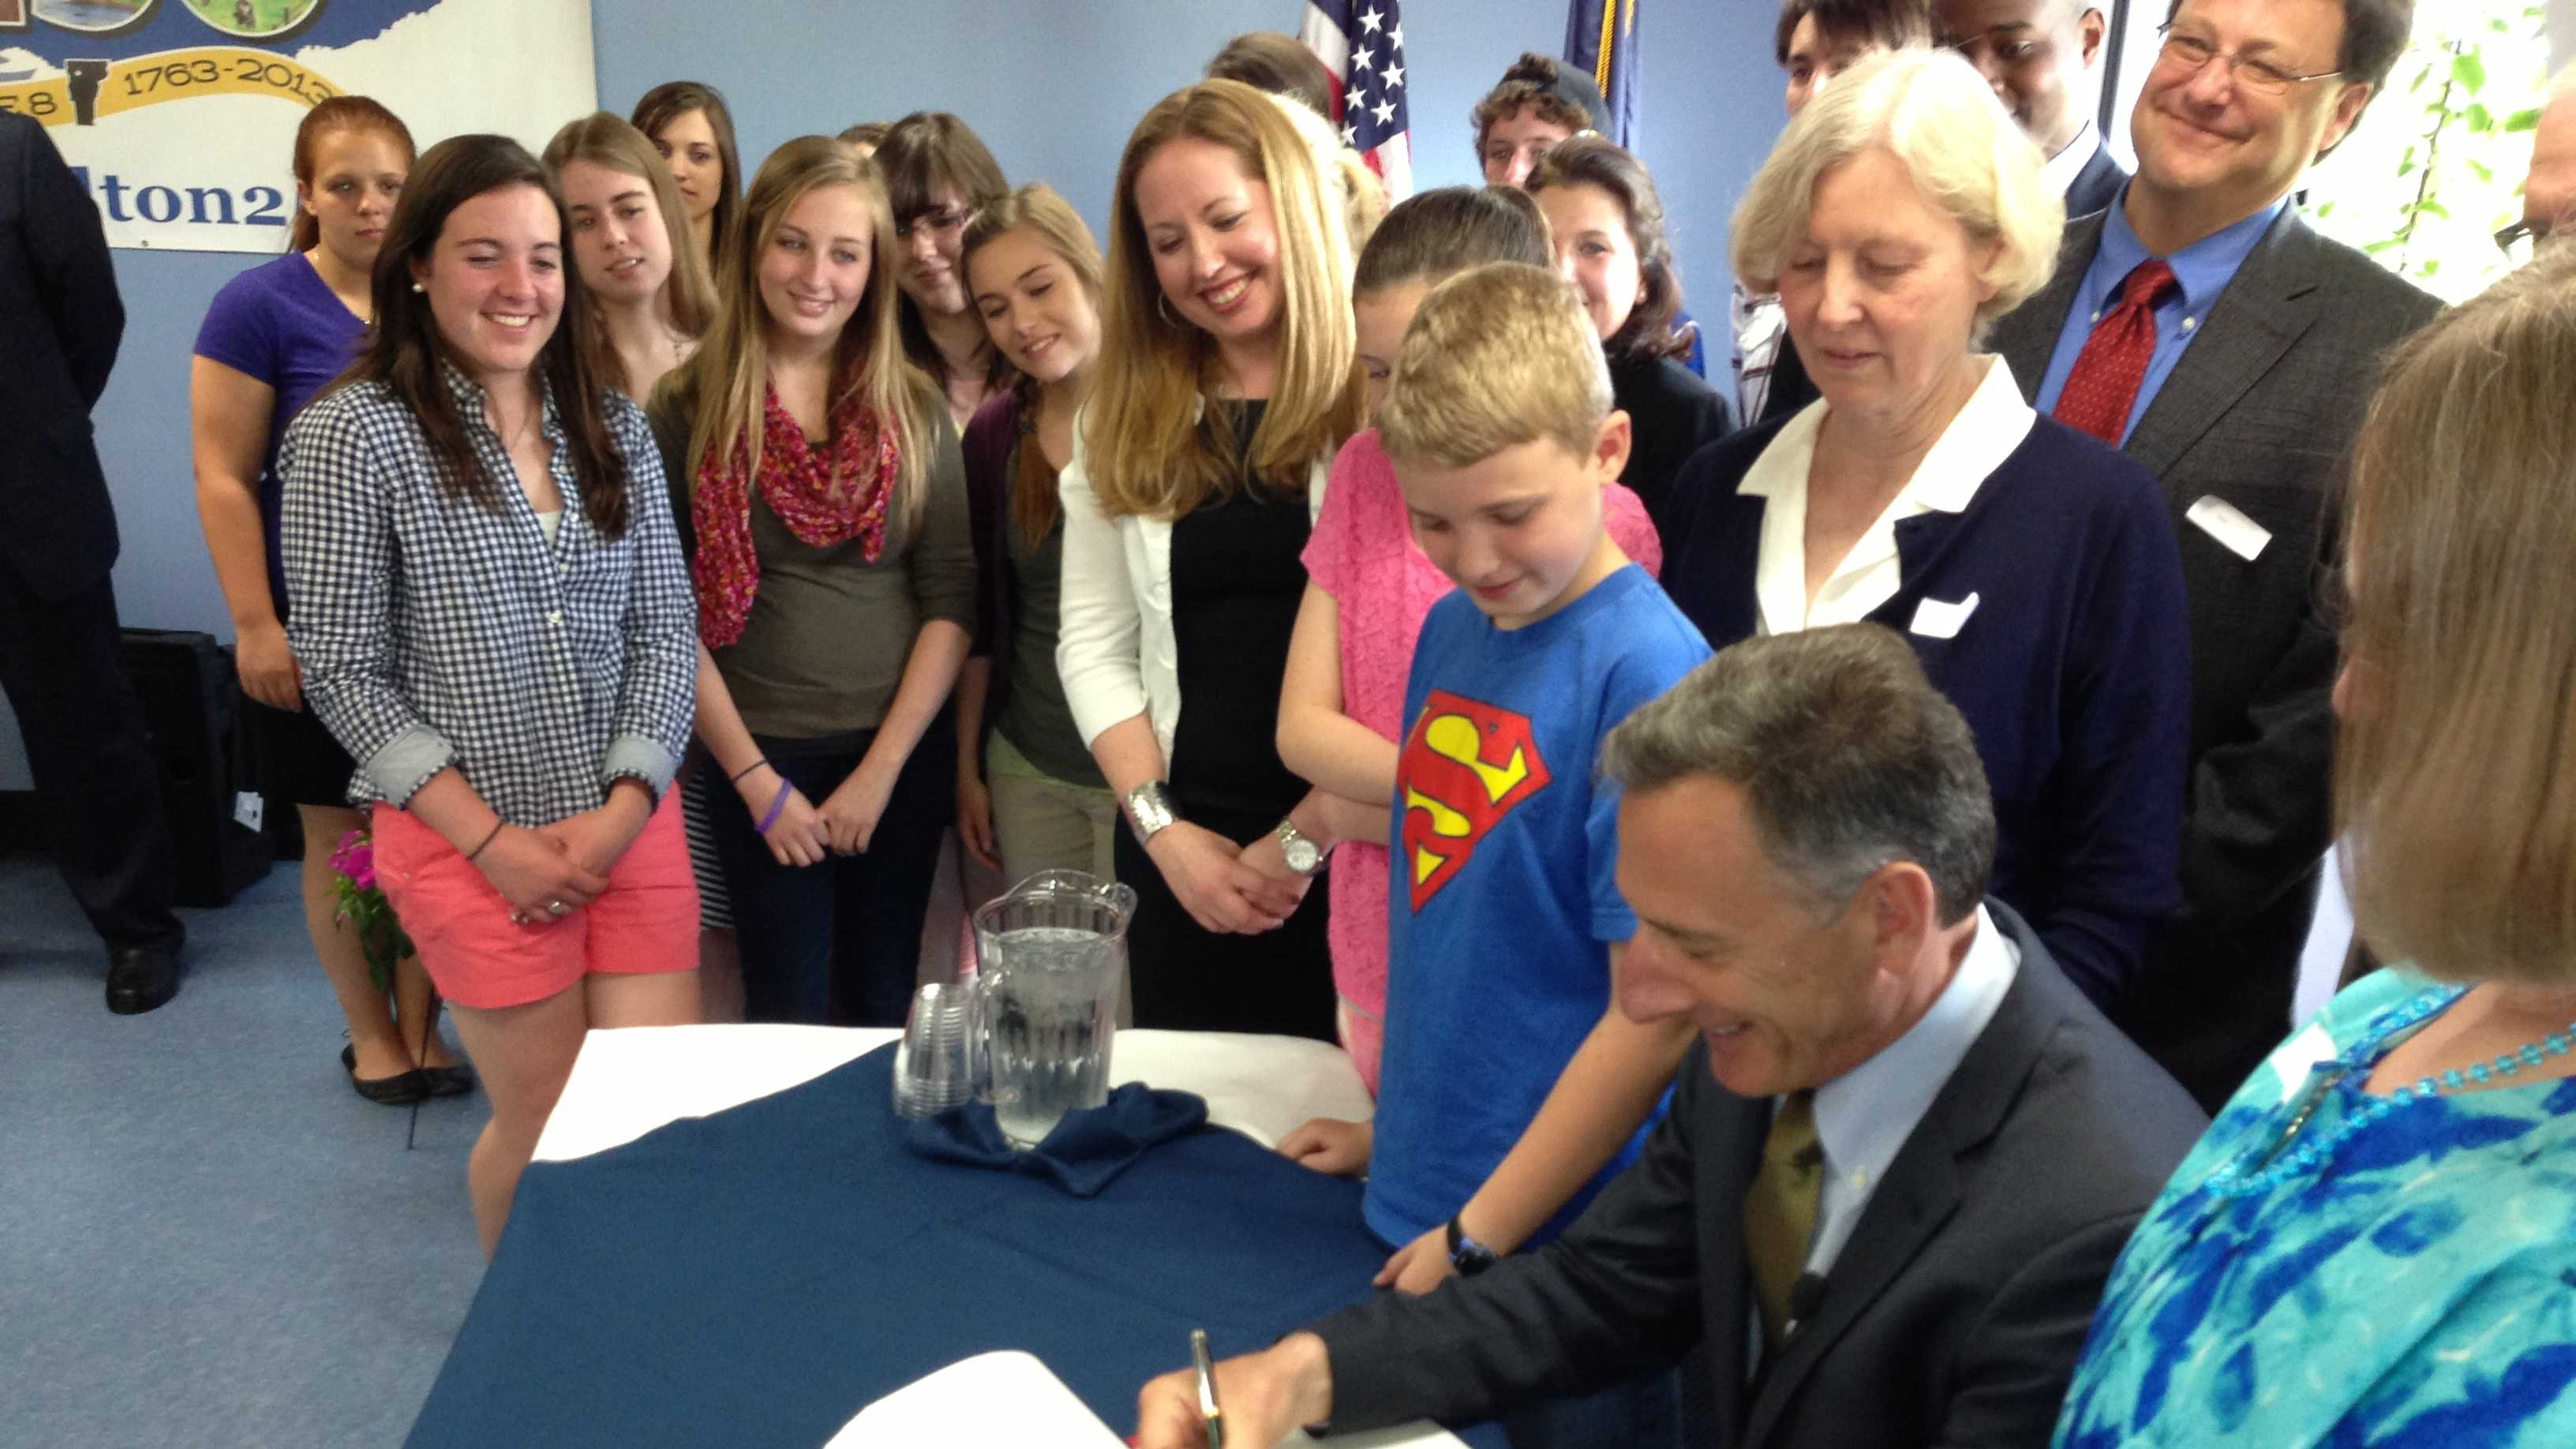 05-28-13 Shumlin signs new budget - img